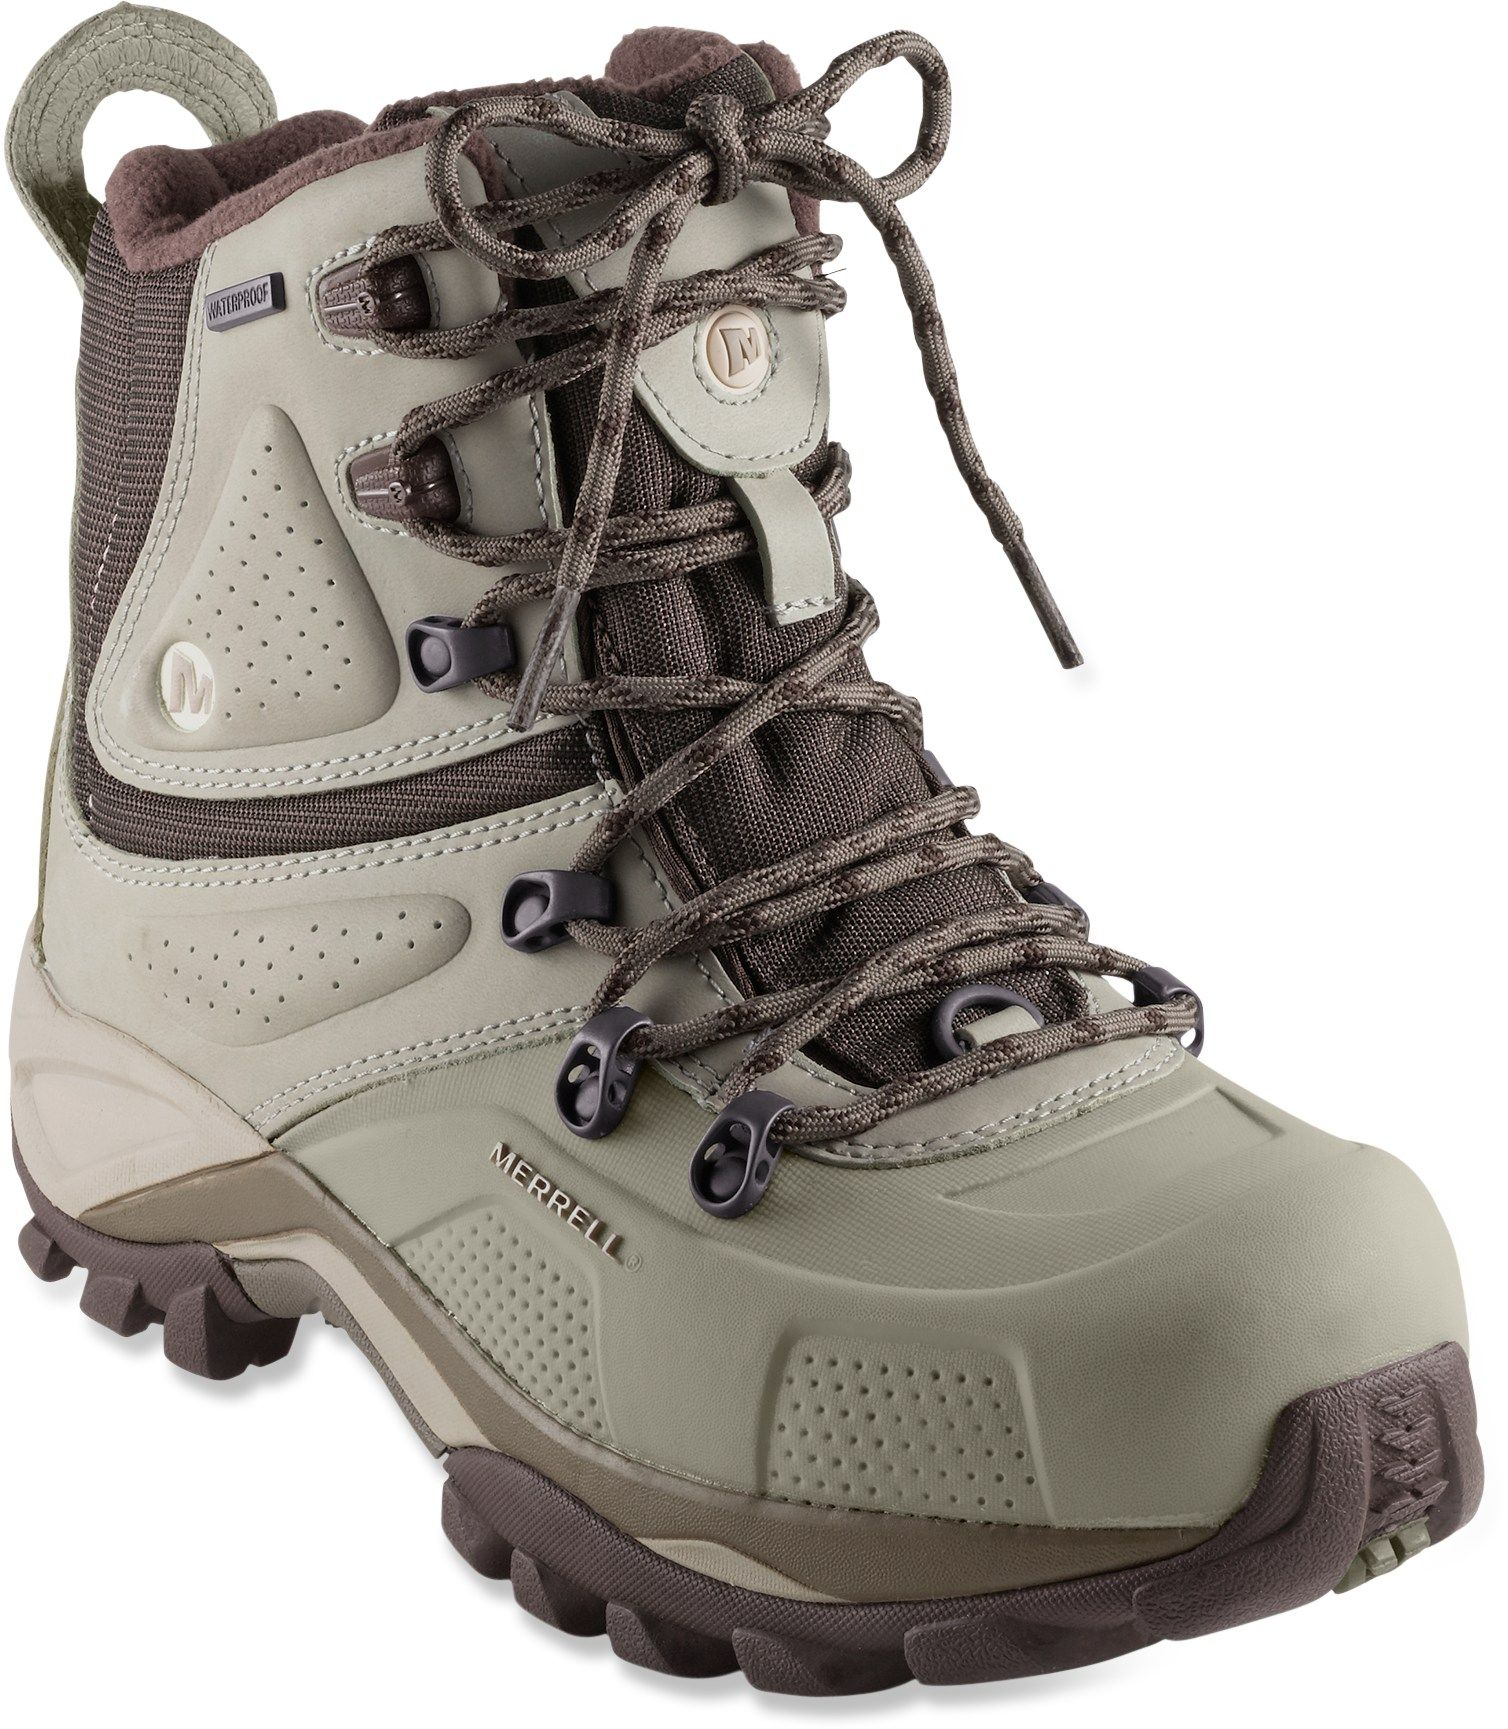 Merrell Whiteout 8 Waterproof Winter Boots - Women s - Free Shipping at  REI.com 561a4953fb6